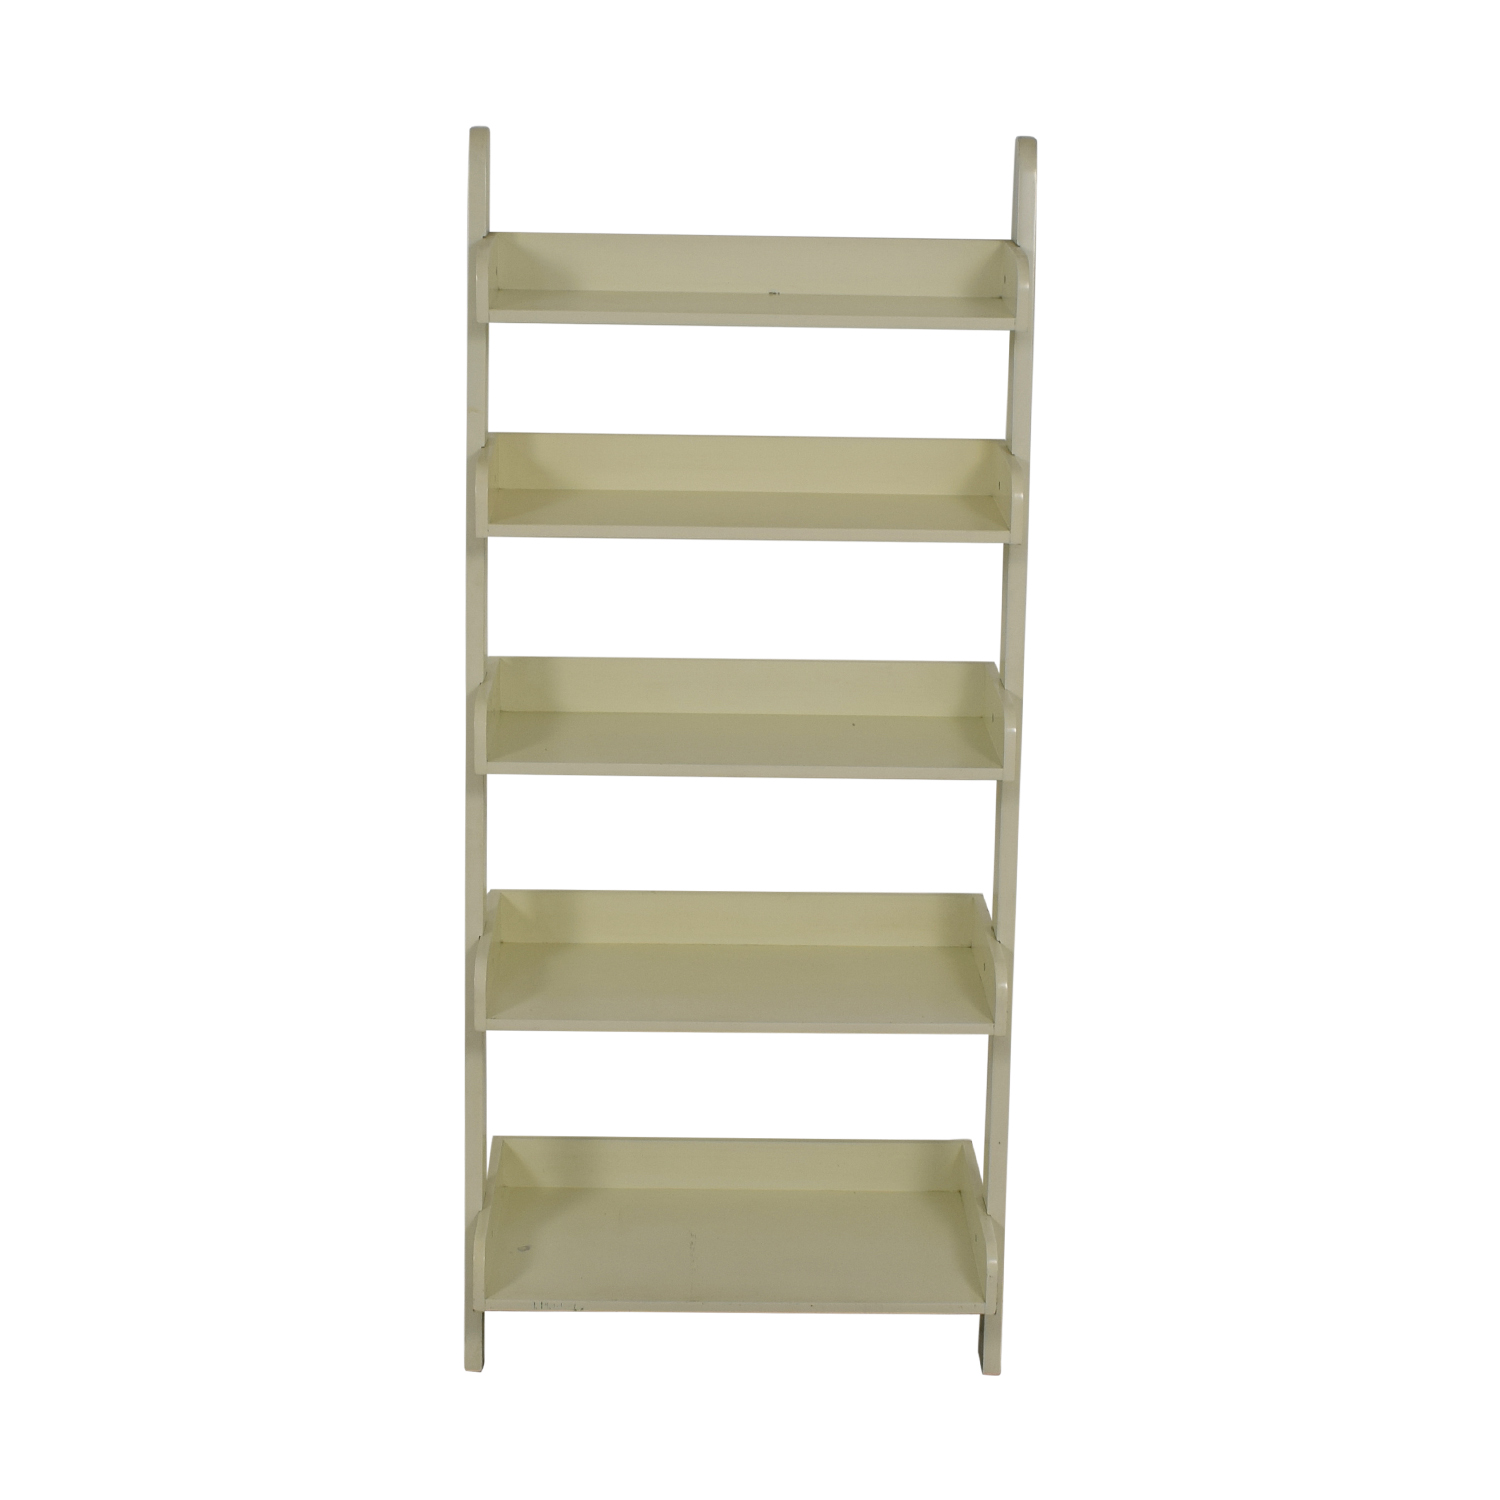 shop Pottery Barn Pottery Barn Studio White Wall Shelf online